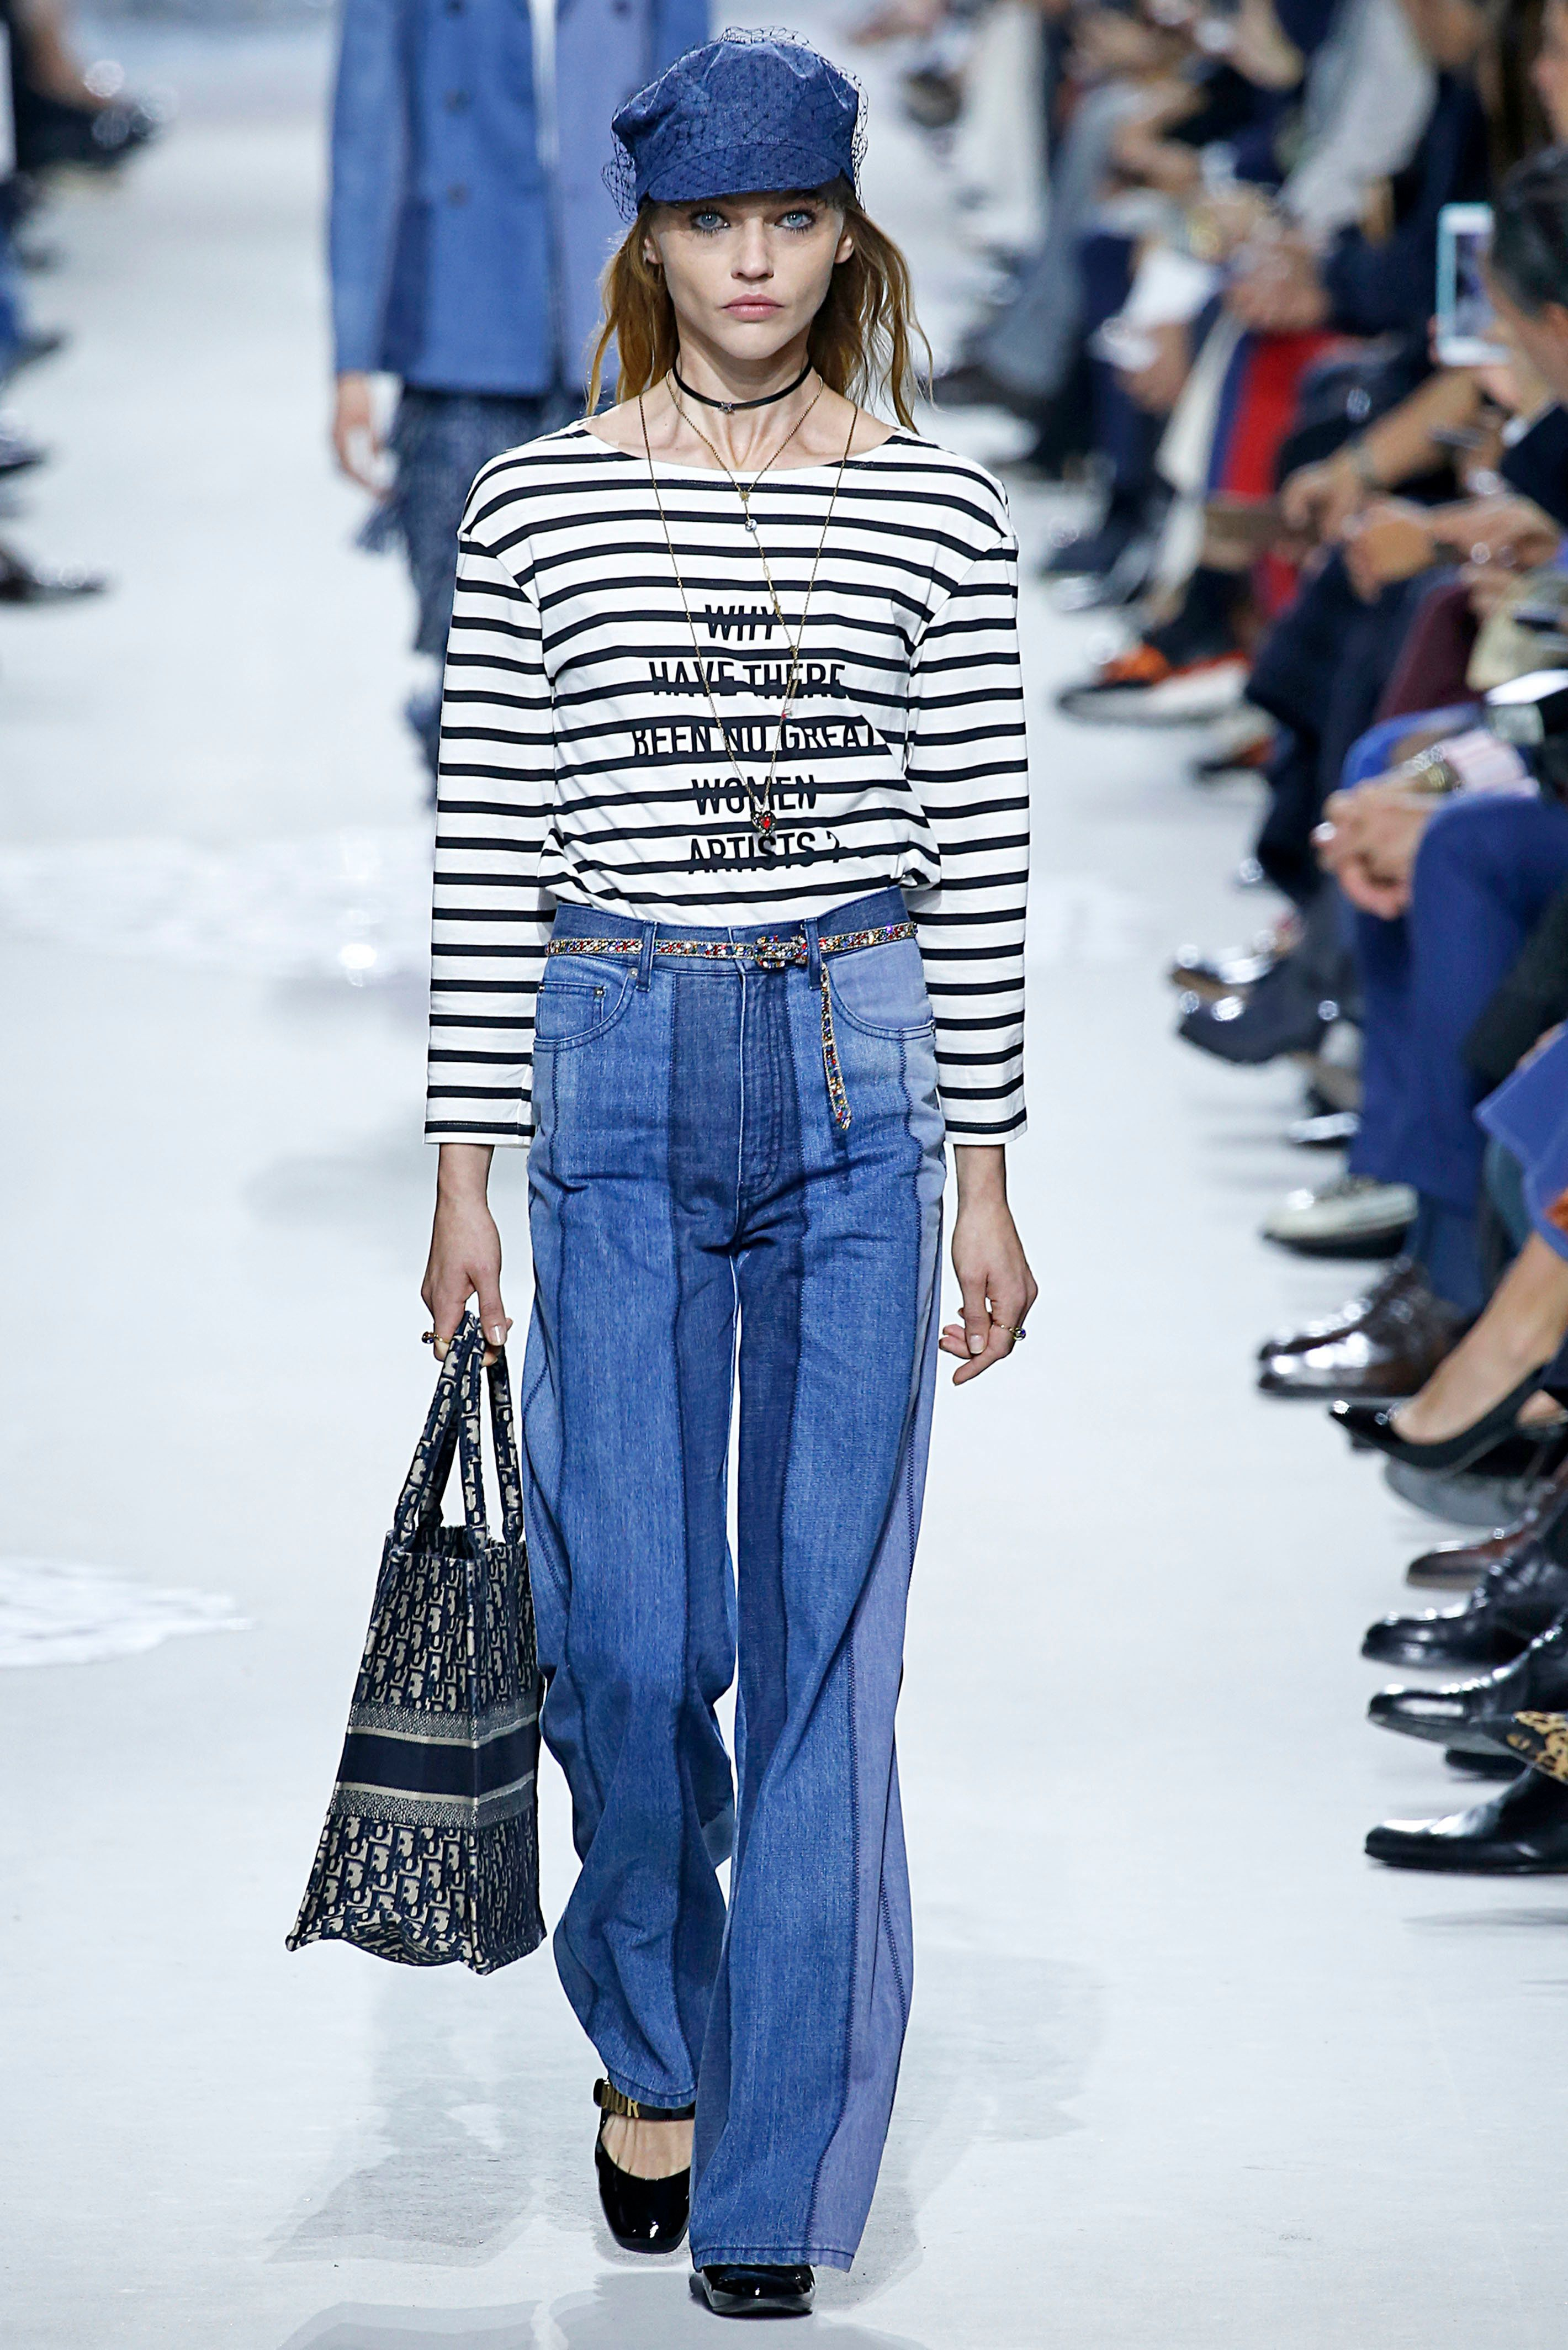 Dior Makes Another Feminist Fashion Statement On The